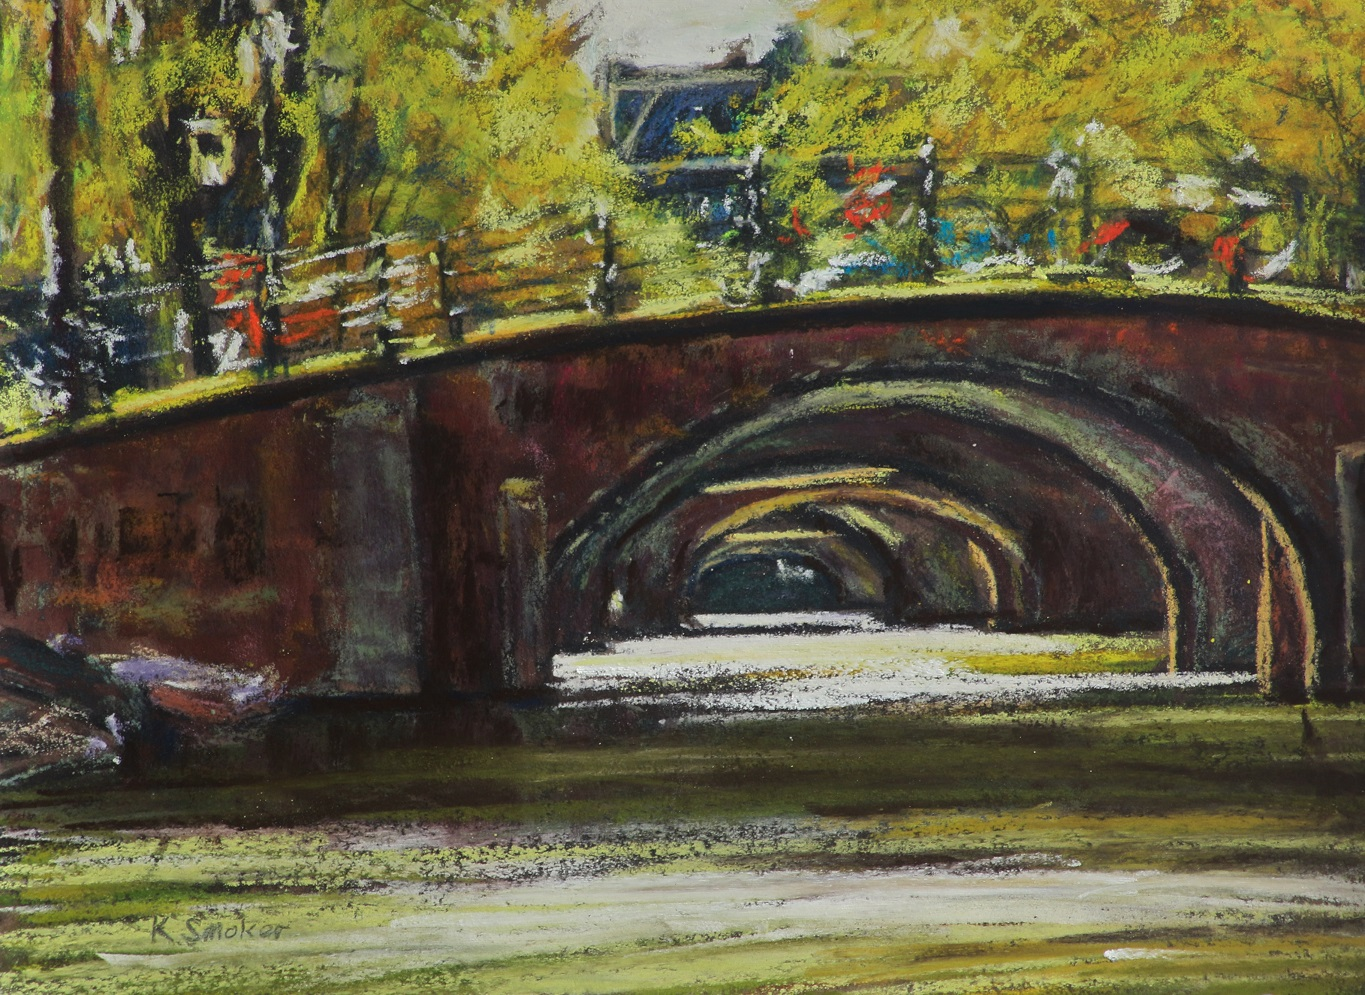 Seven Bridges, Reguliersgracht. 9x12.